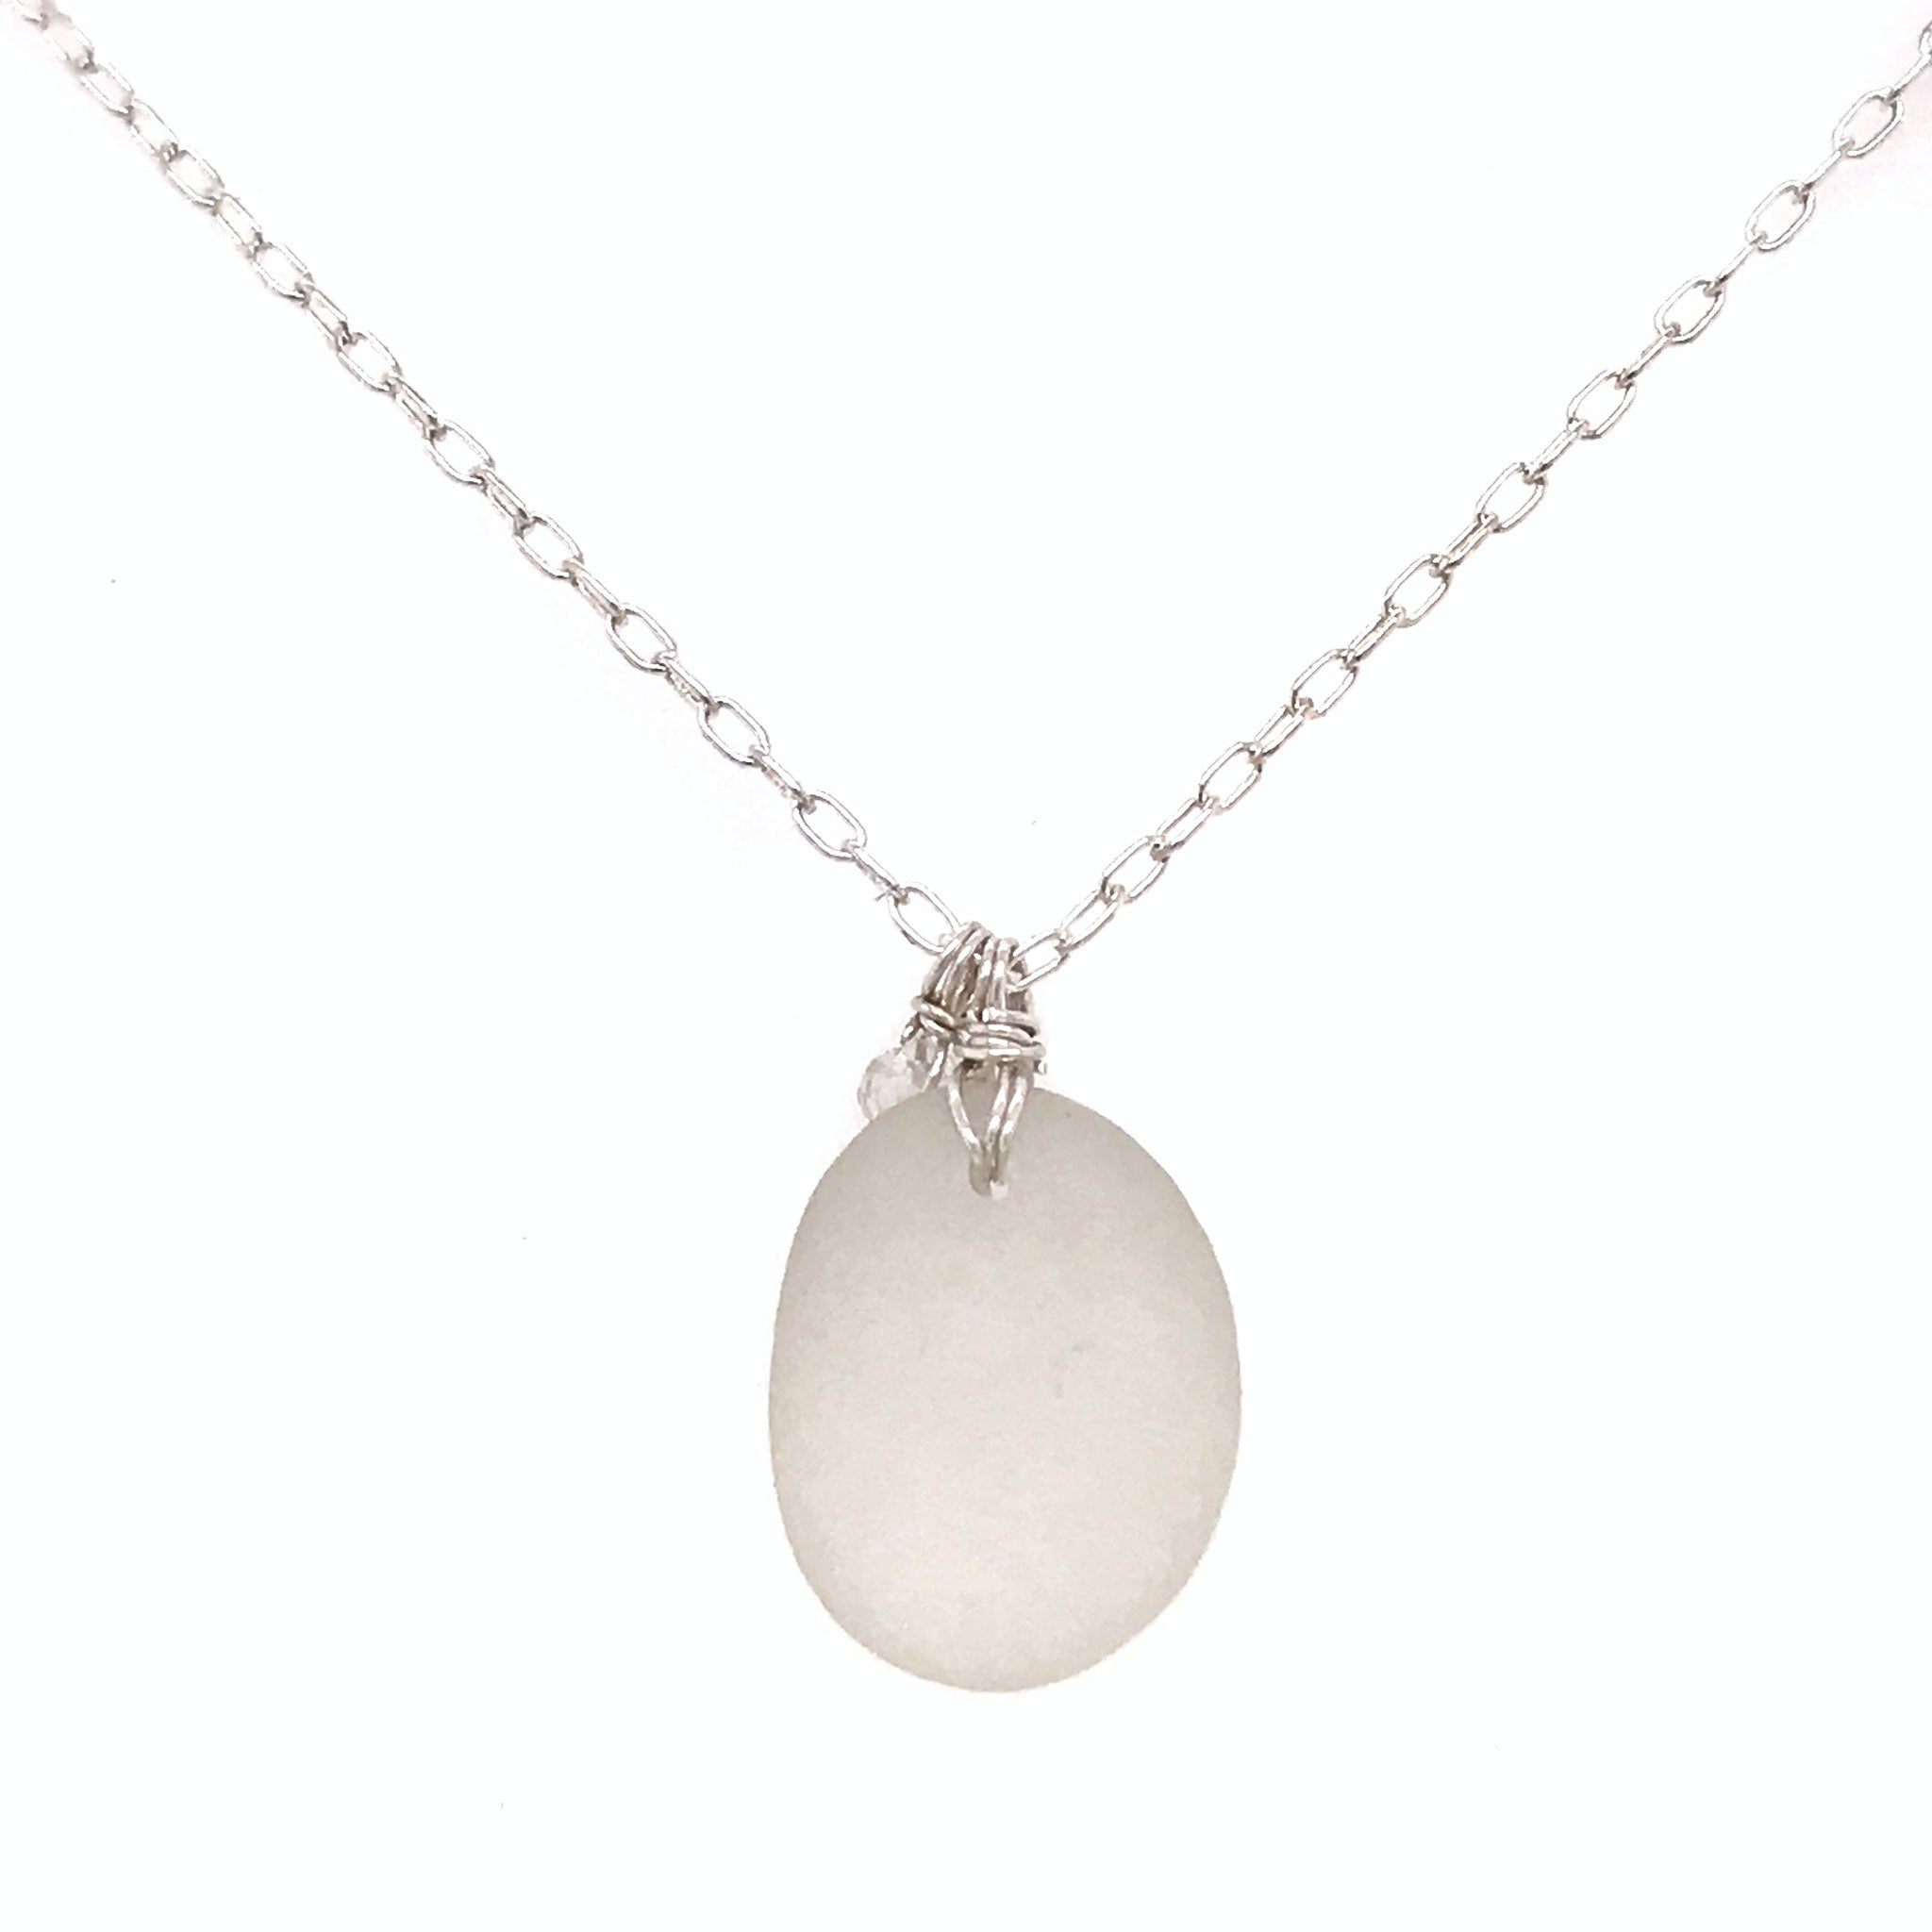 clear seaglass necklace sterling silver with aquamarines kriket Broadhurst jewellery